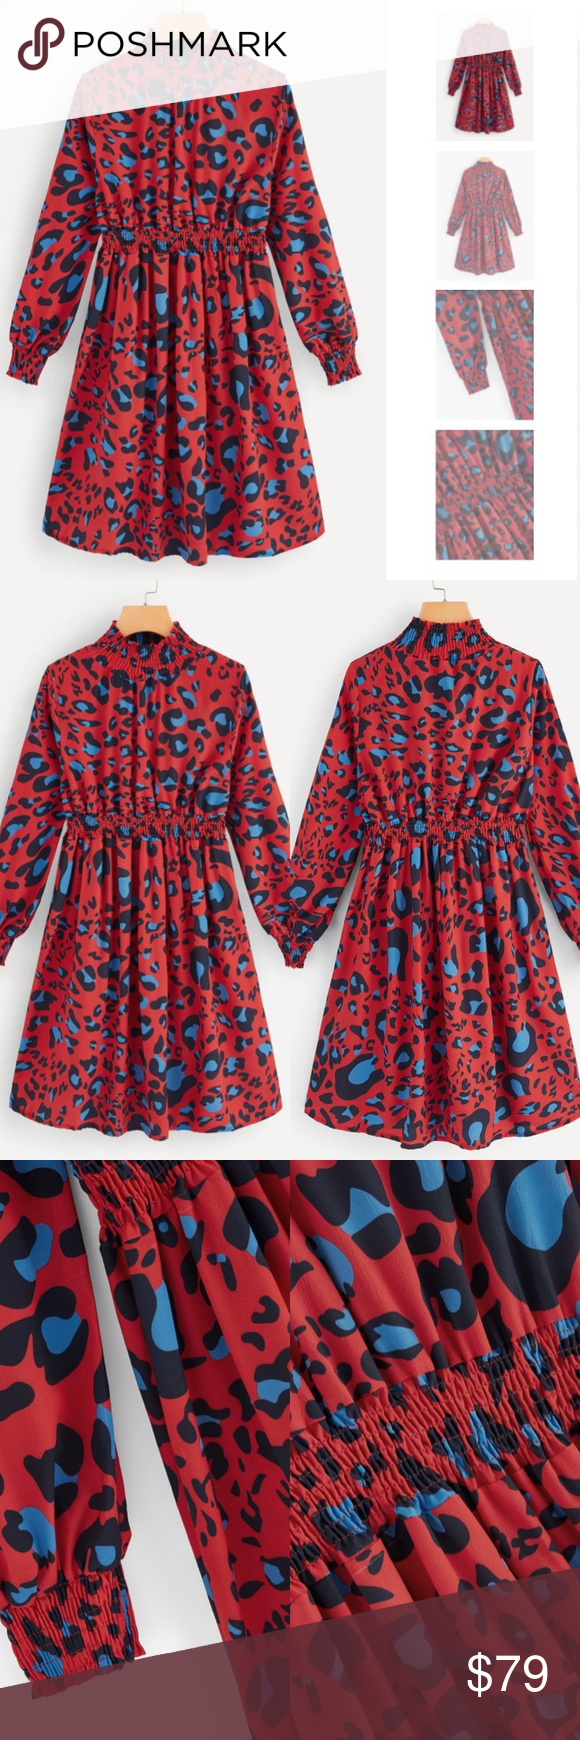 3ad45ba9fd *JUST IN* RED LEOPARD PRINT DRESS FEATURES: ELASTIC WAIST. STAND COLLAR.  LONG SLEEVES. 97% POLYESTER 3% SPANDEX LEOPARD COLORS INCLUDE: BLUE BLACK &  RED.